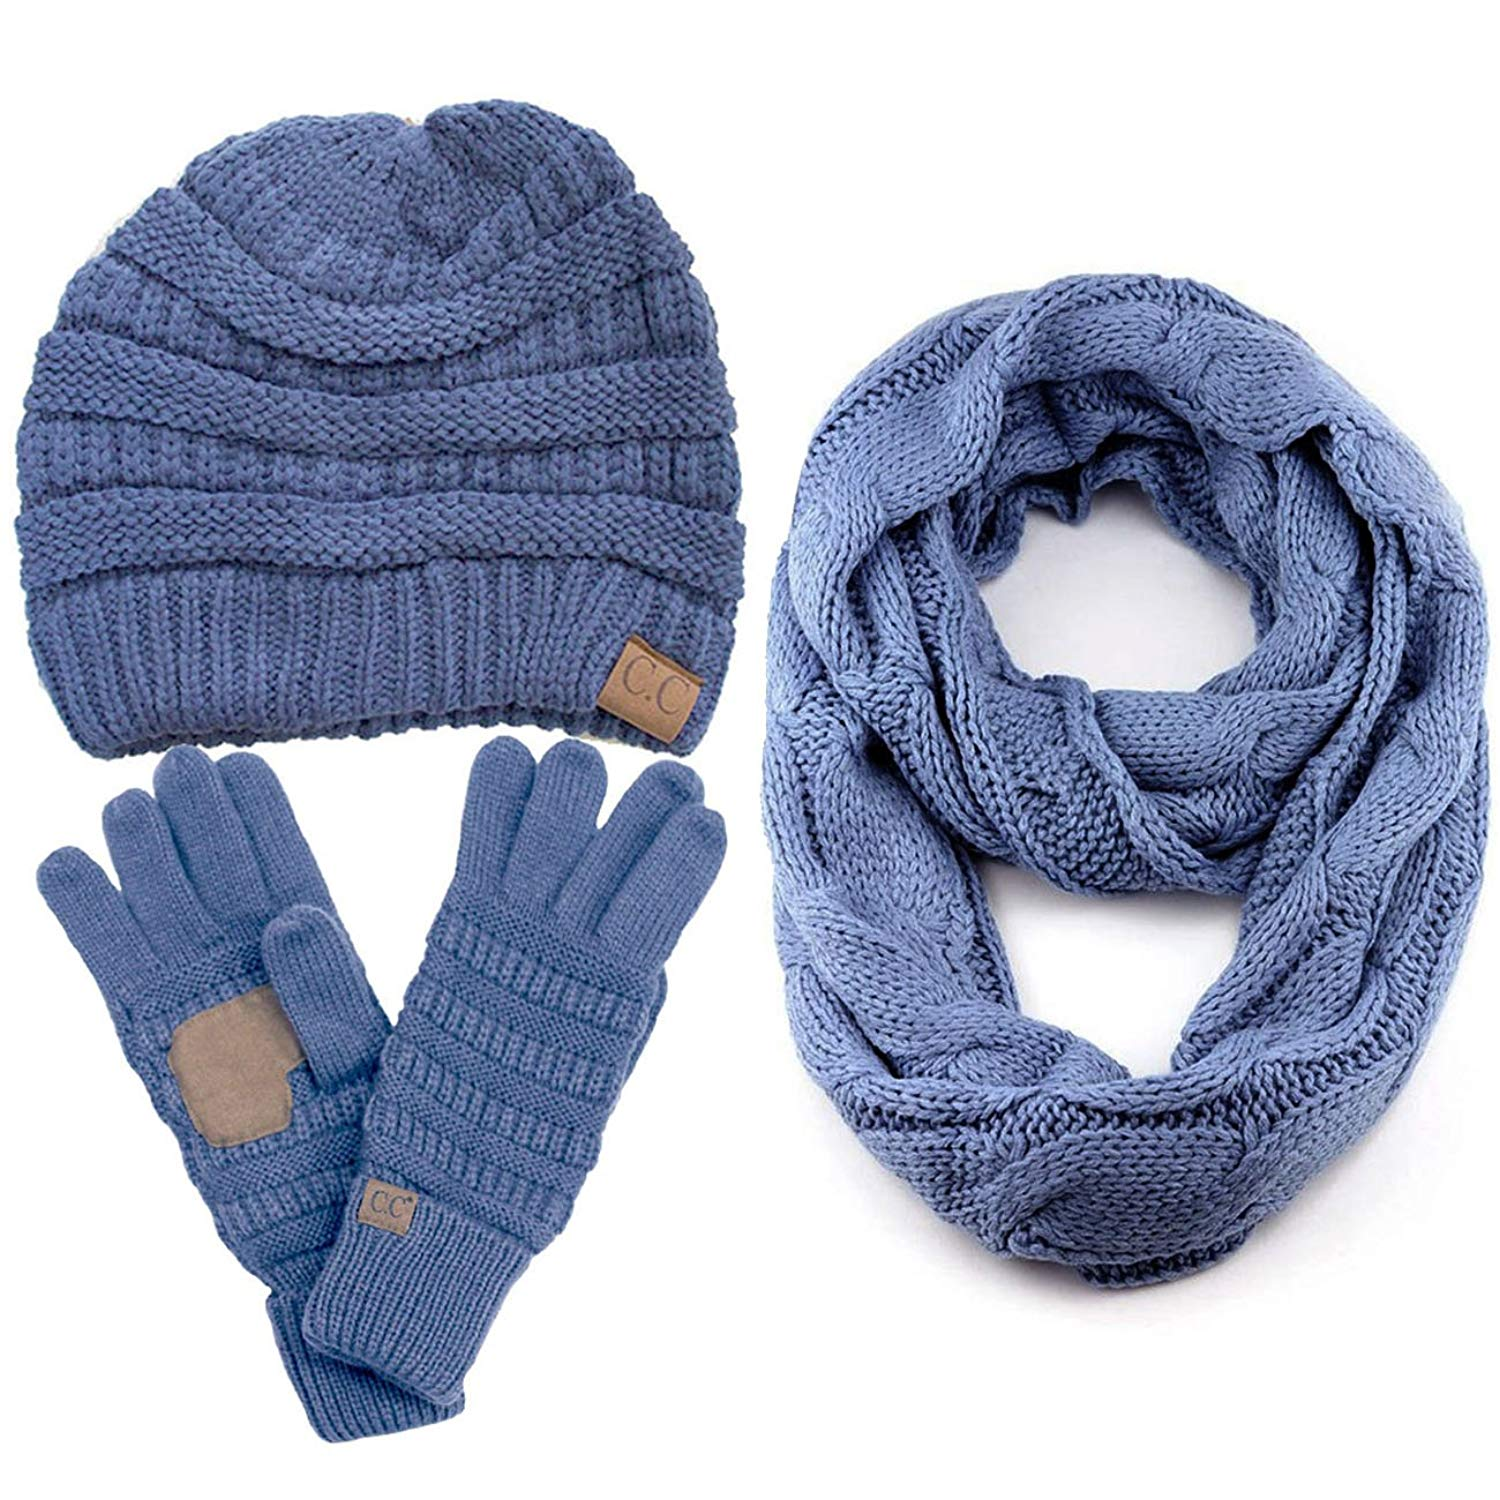 96cad48ab58 Get Quotations · ScarvesMe CC 3pc Set Trendy Warm Chunky Soft Stretch Cable Knit  Beanie Scarves Gloves Set